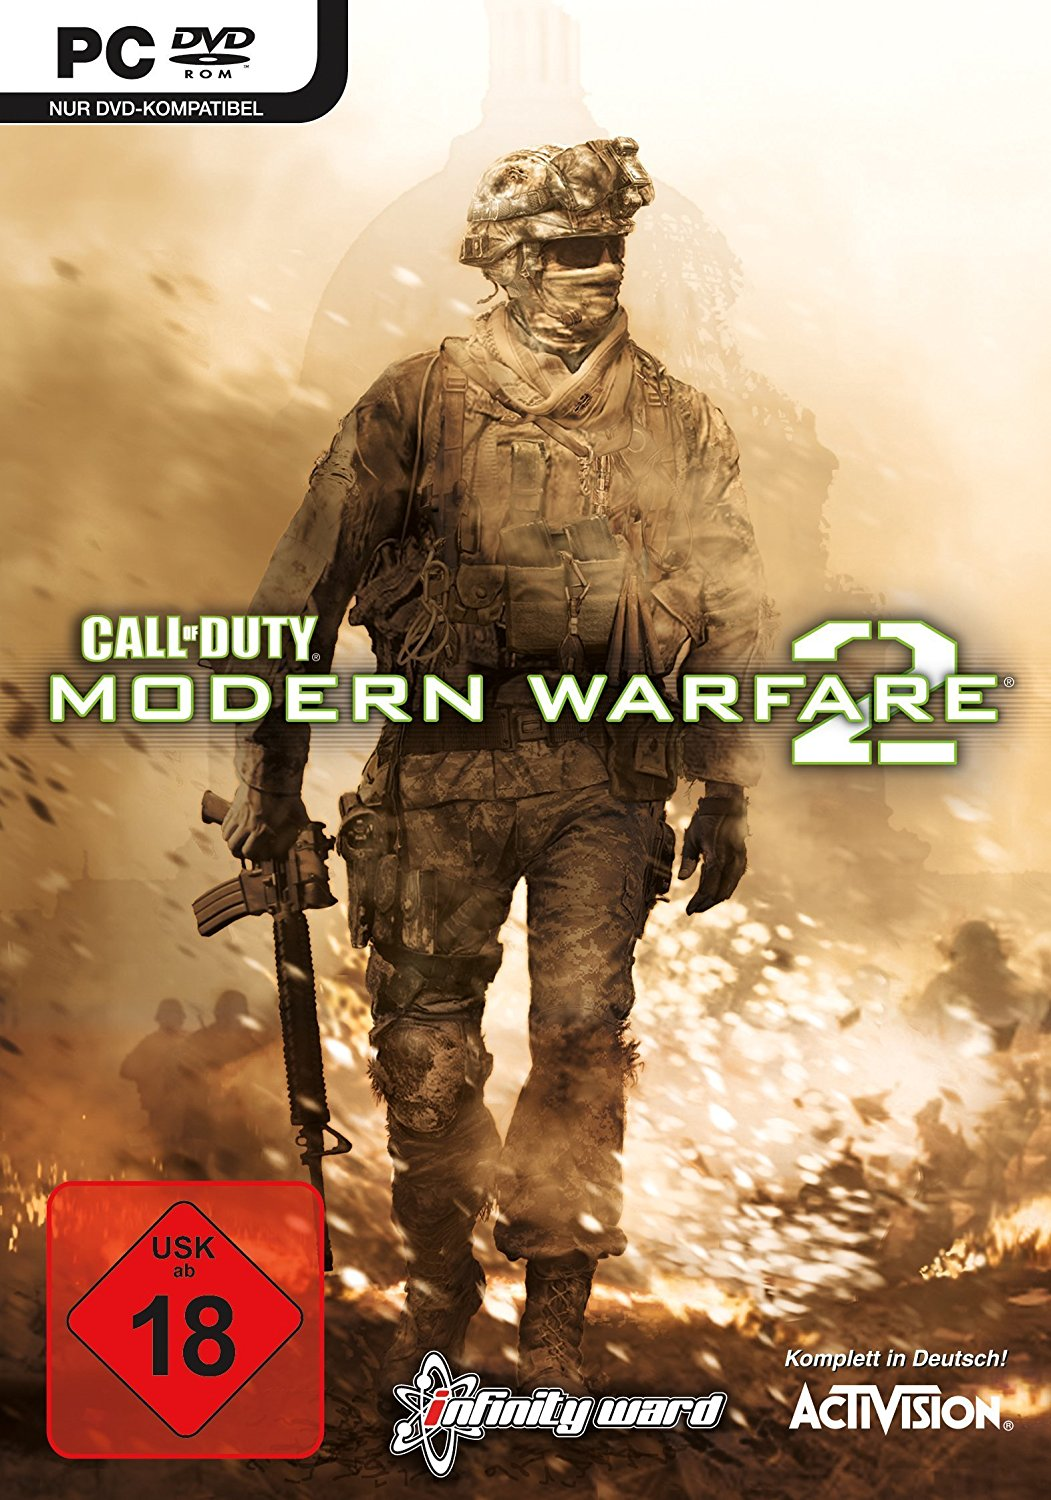 Call of Duty - Modern Warfare 2 PC